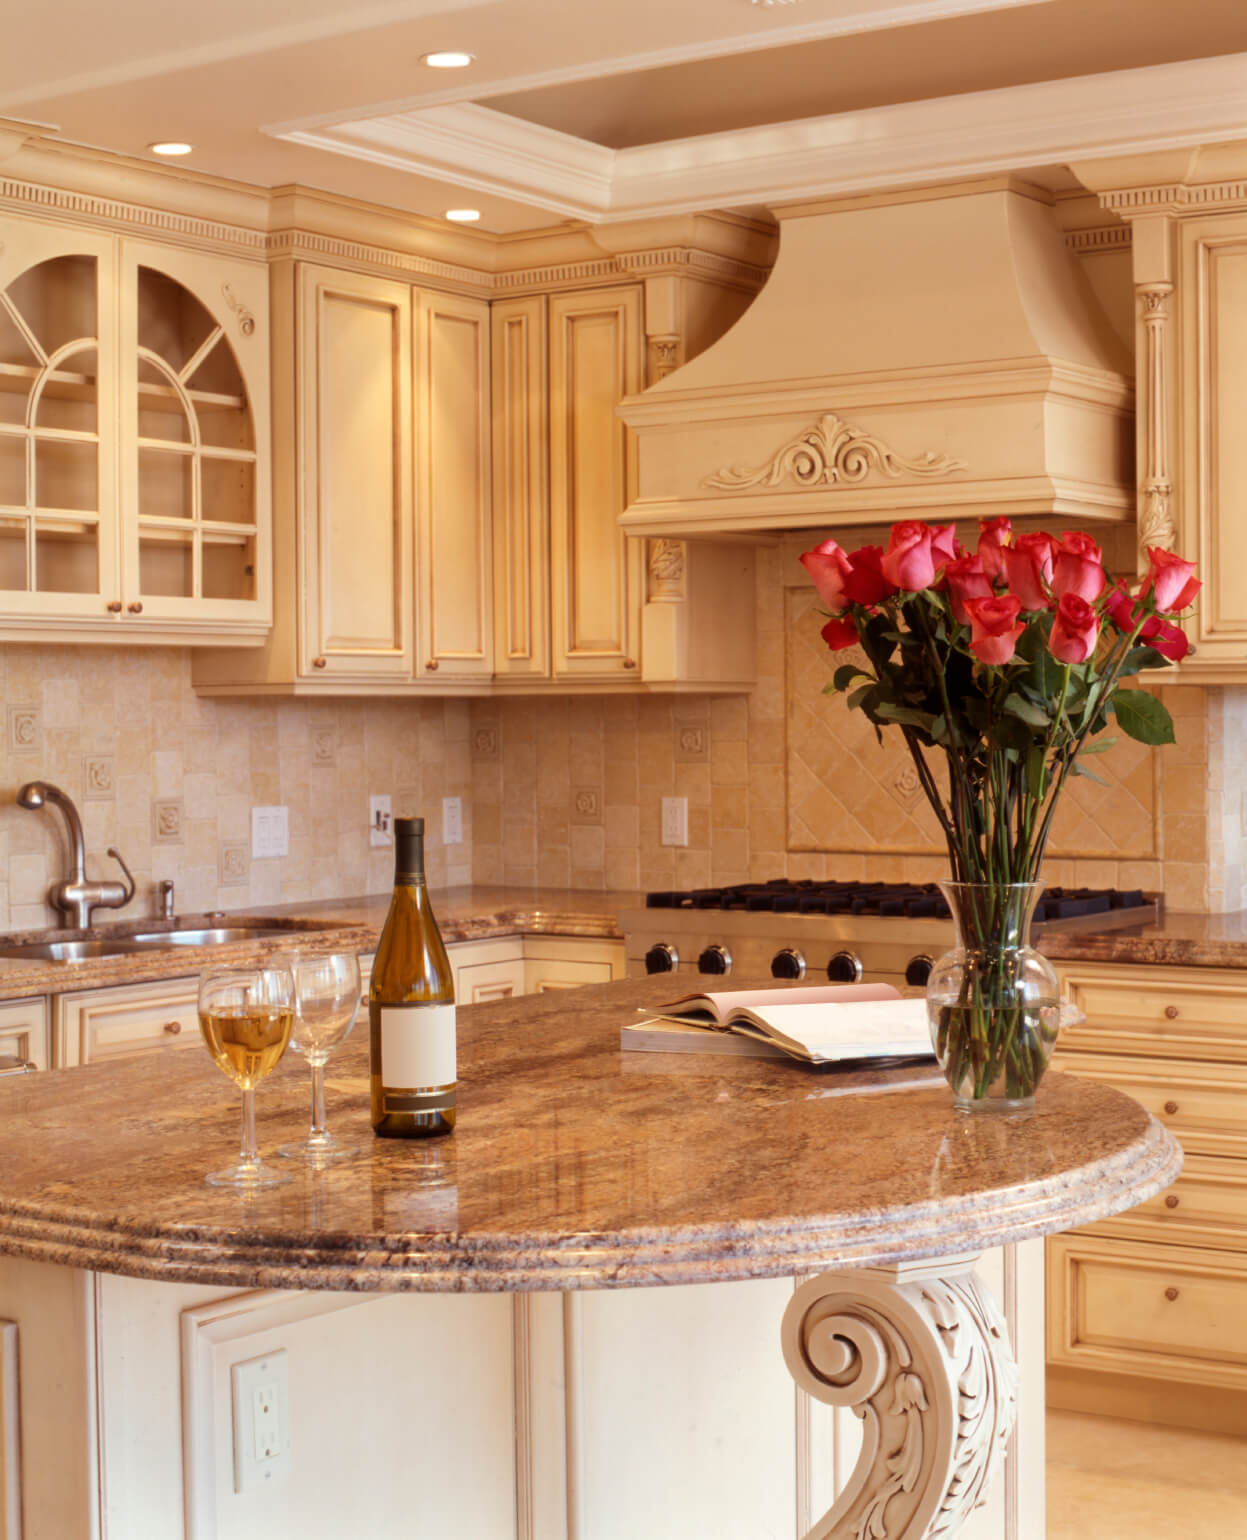 Exquisite Lush Beige Tones Throughout This Including Filigreed Wood Islandwith Rounded Marble Kitchen Island Ideas Kitchen Islands Seating Ideas kitchen Kitchen Islands With Seating Ideas